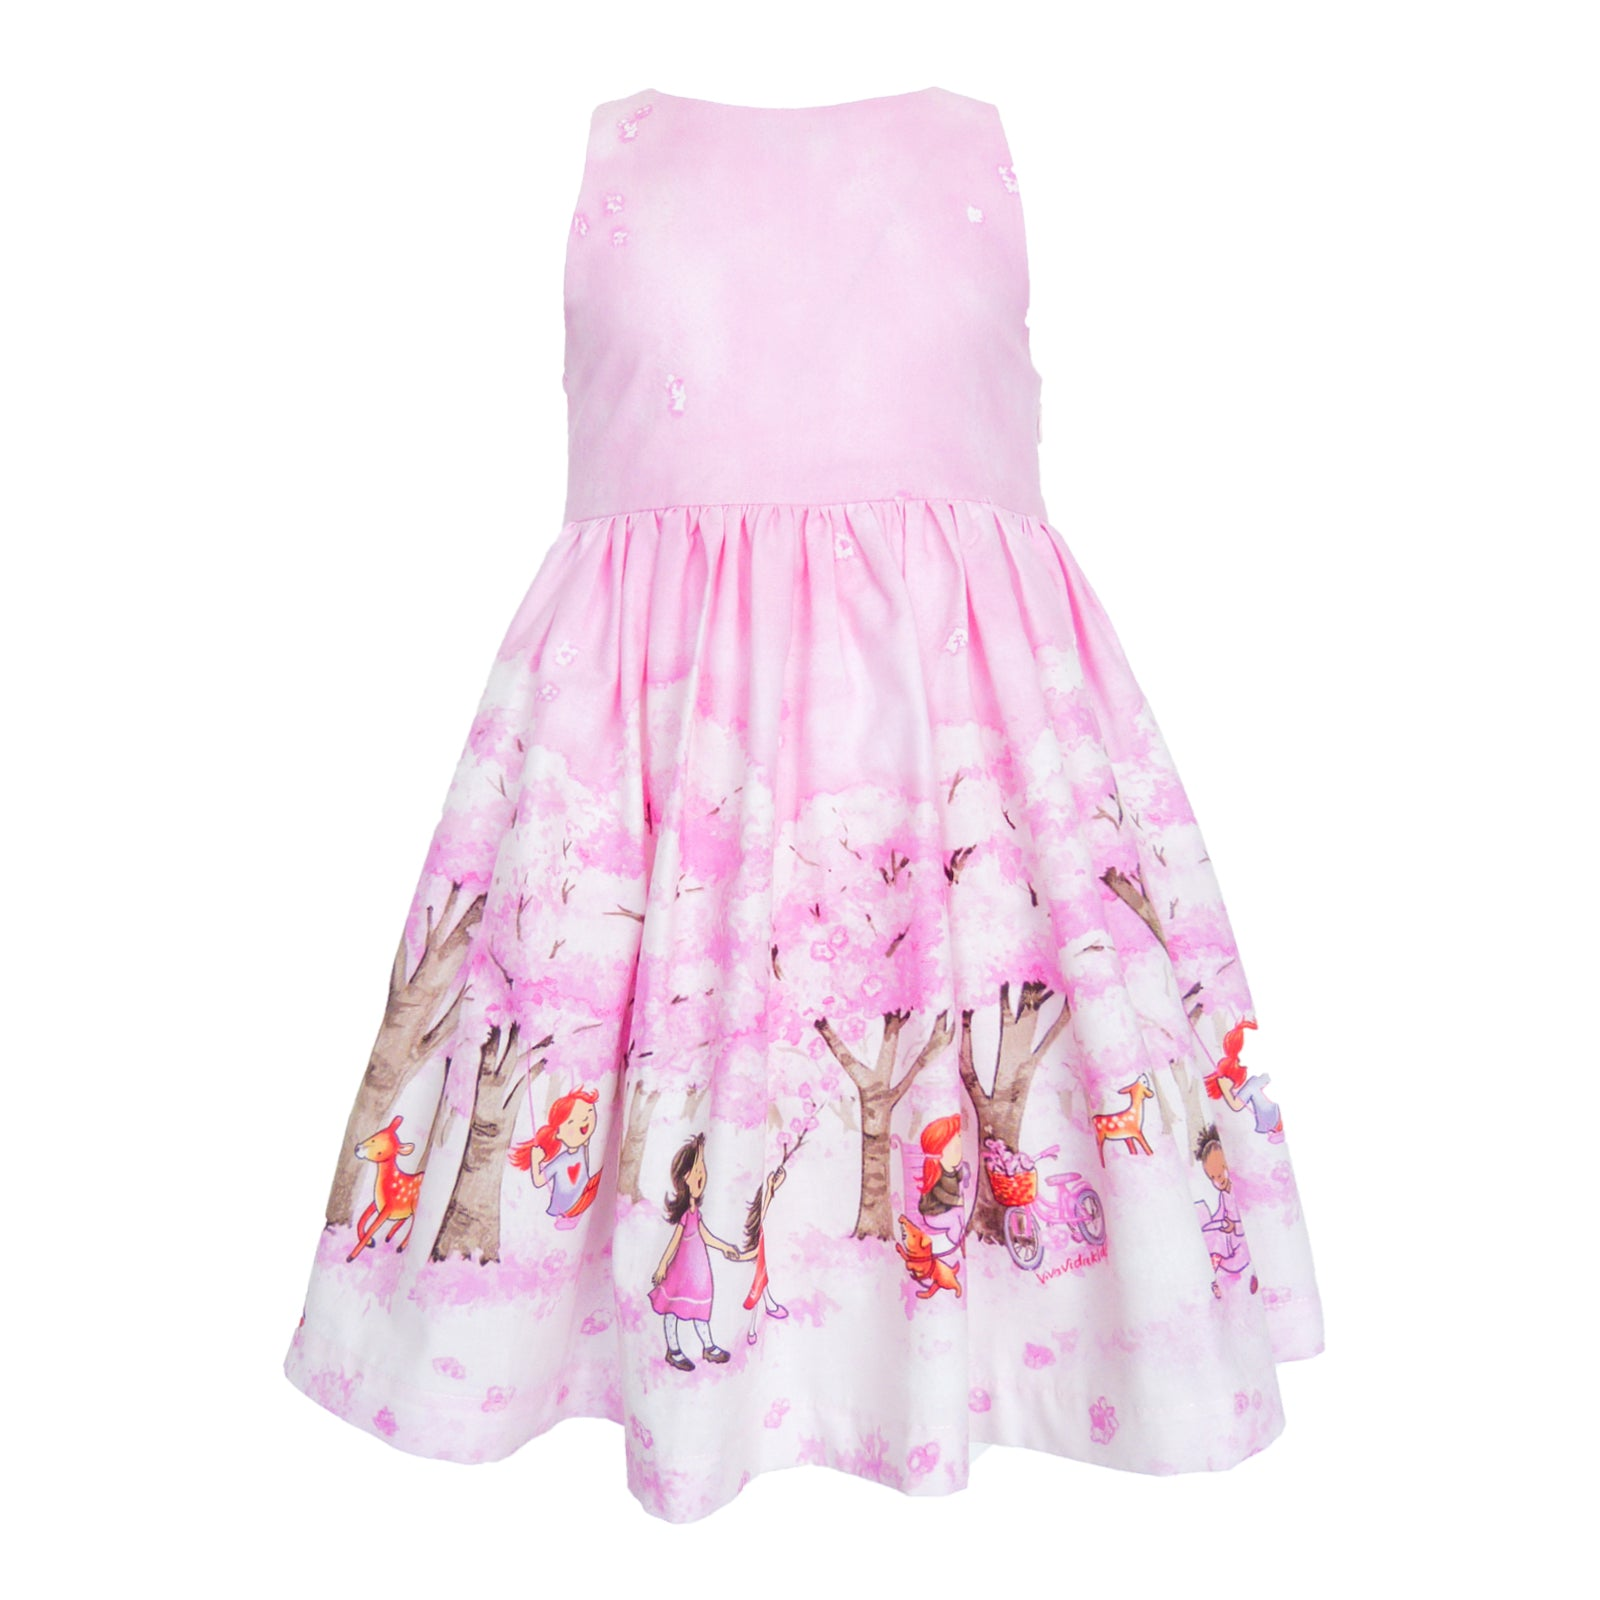 Cadi Dress - Cherry Blossom